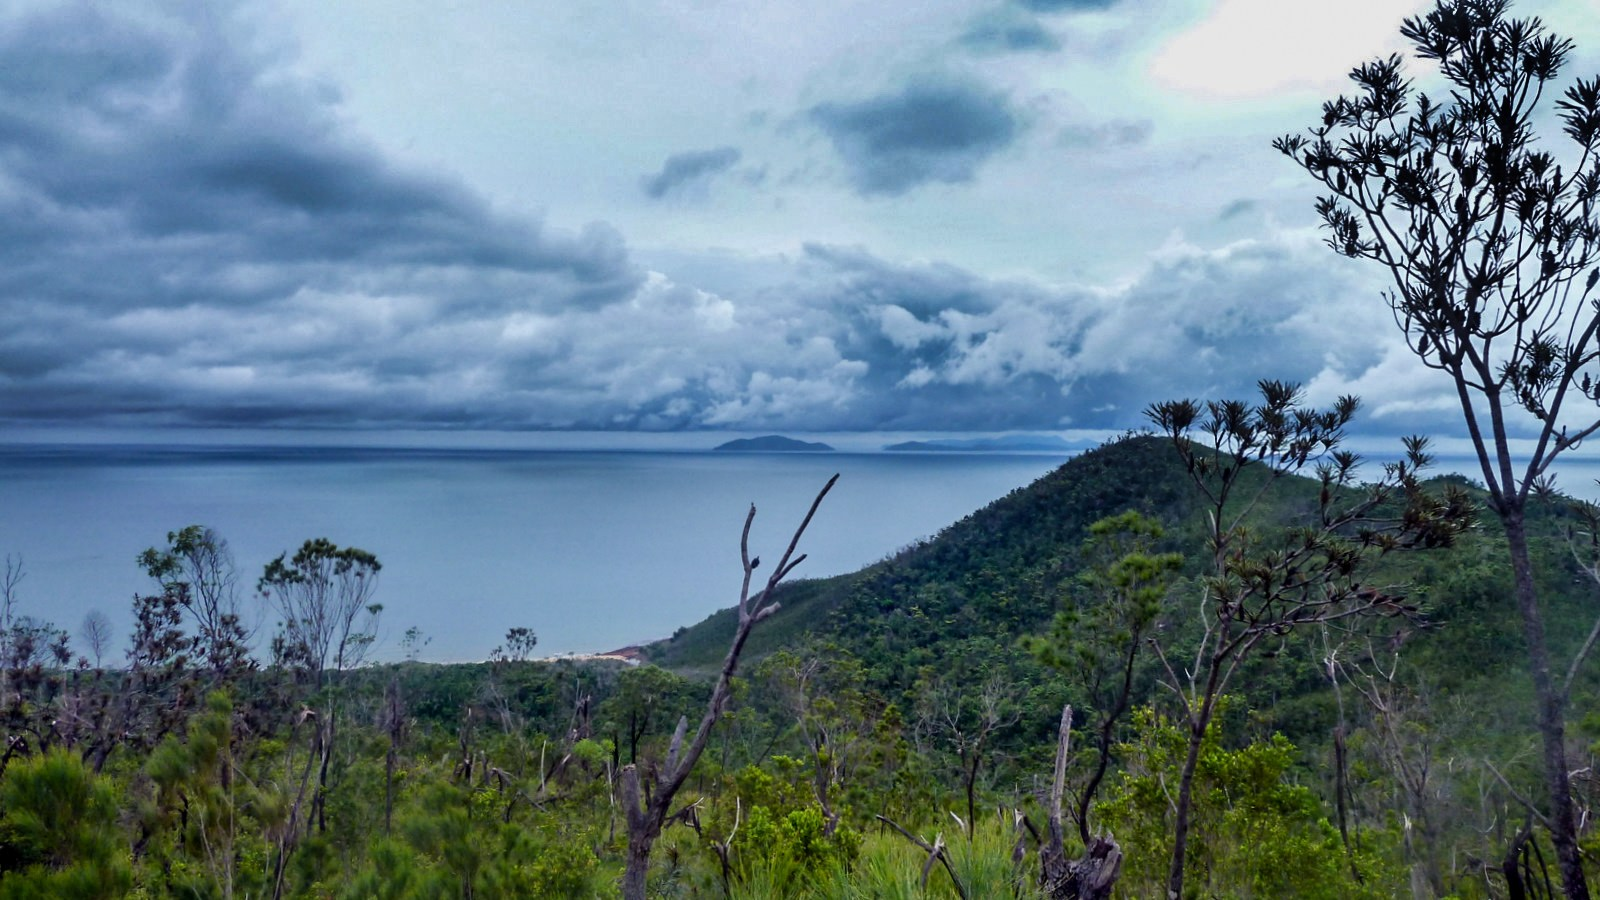 a photo of hinchinbrook's neighbouring islands with dark clouds in the background.